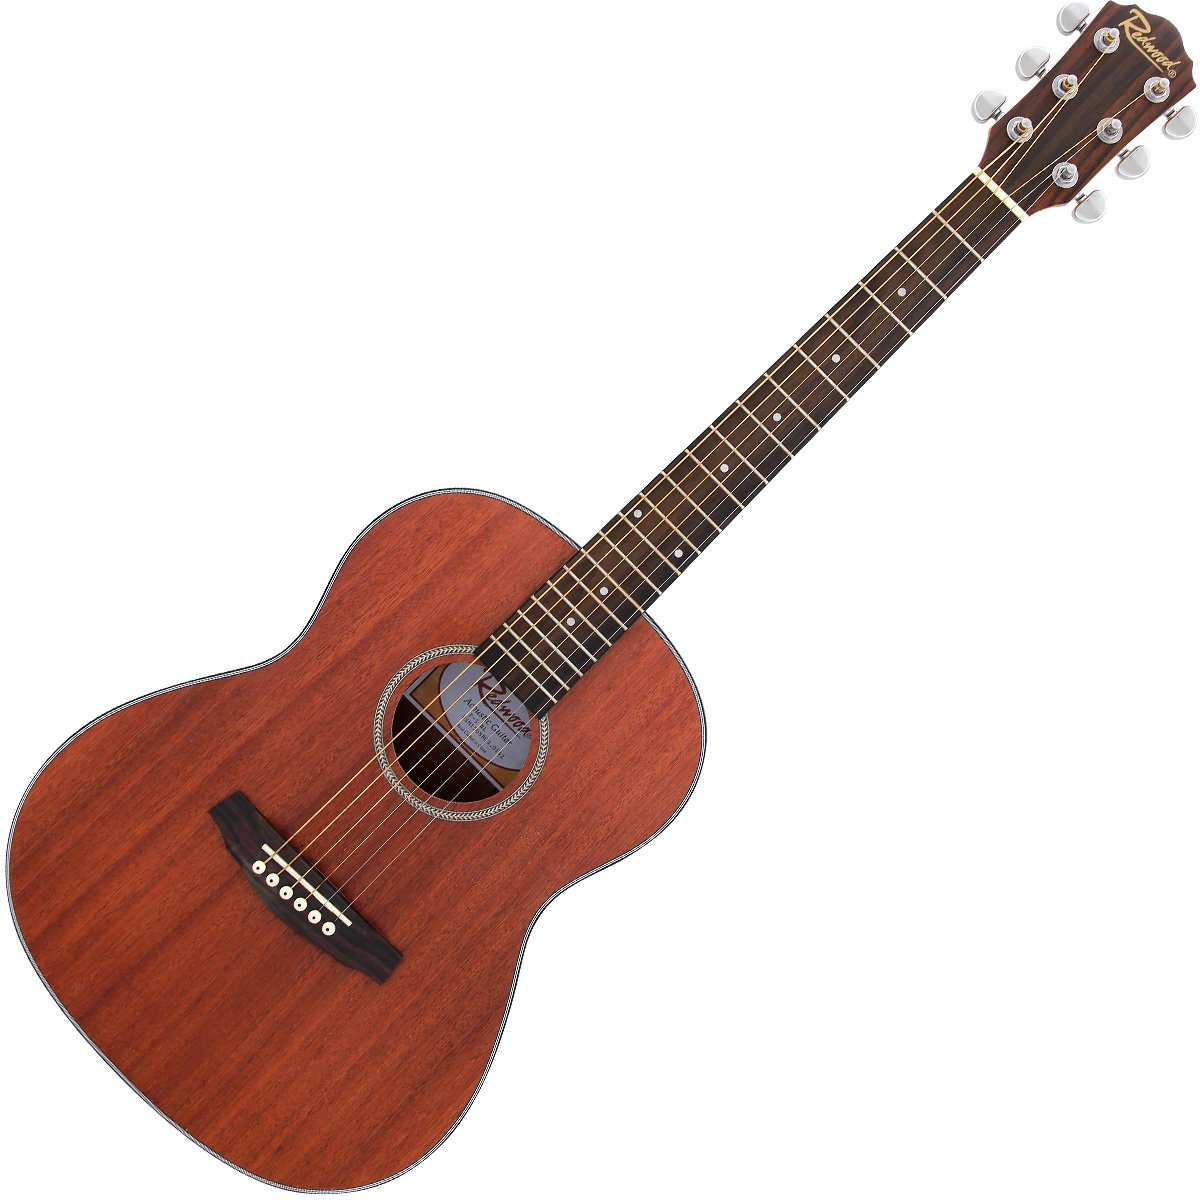 Redwood F-5 Parlour Shape Acoustic Guitar With Sapele Body - Open Pore Natural